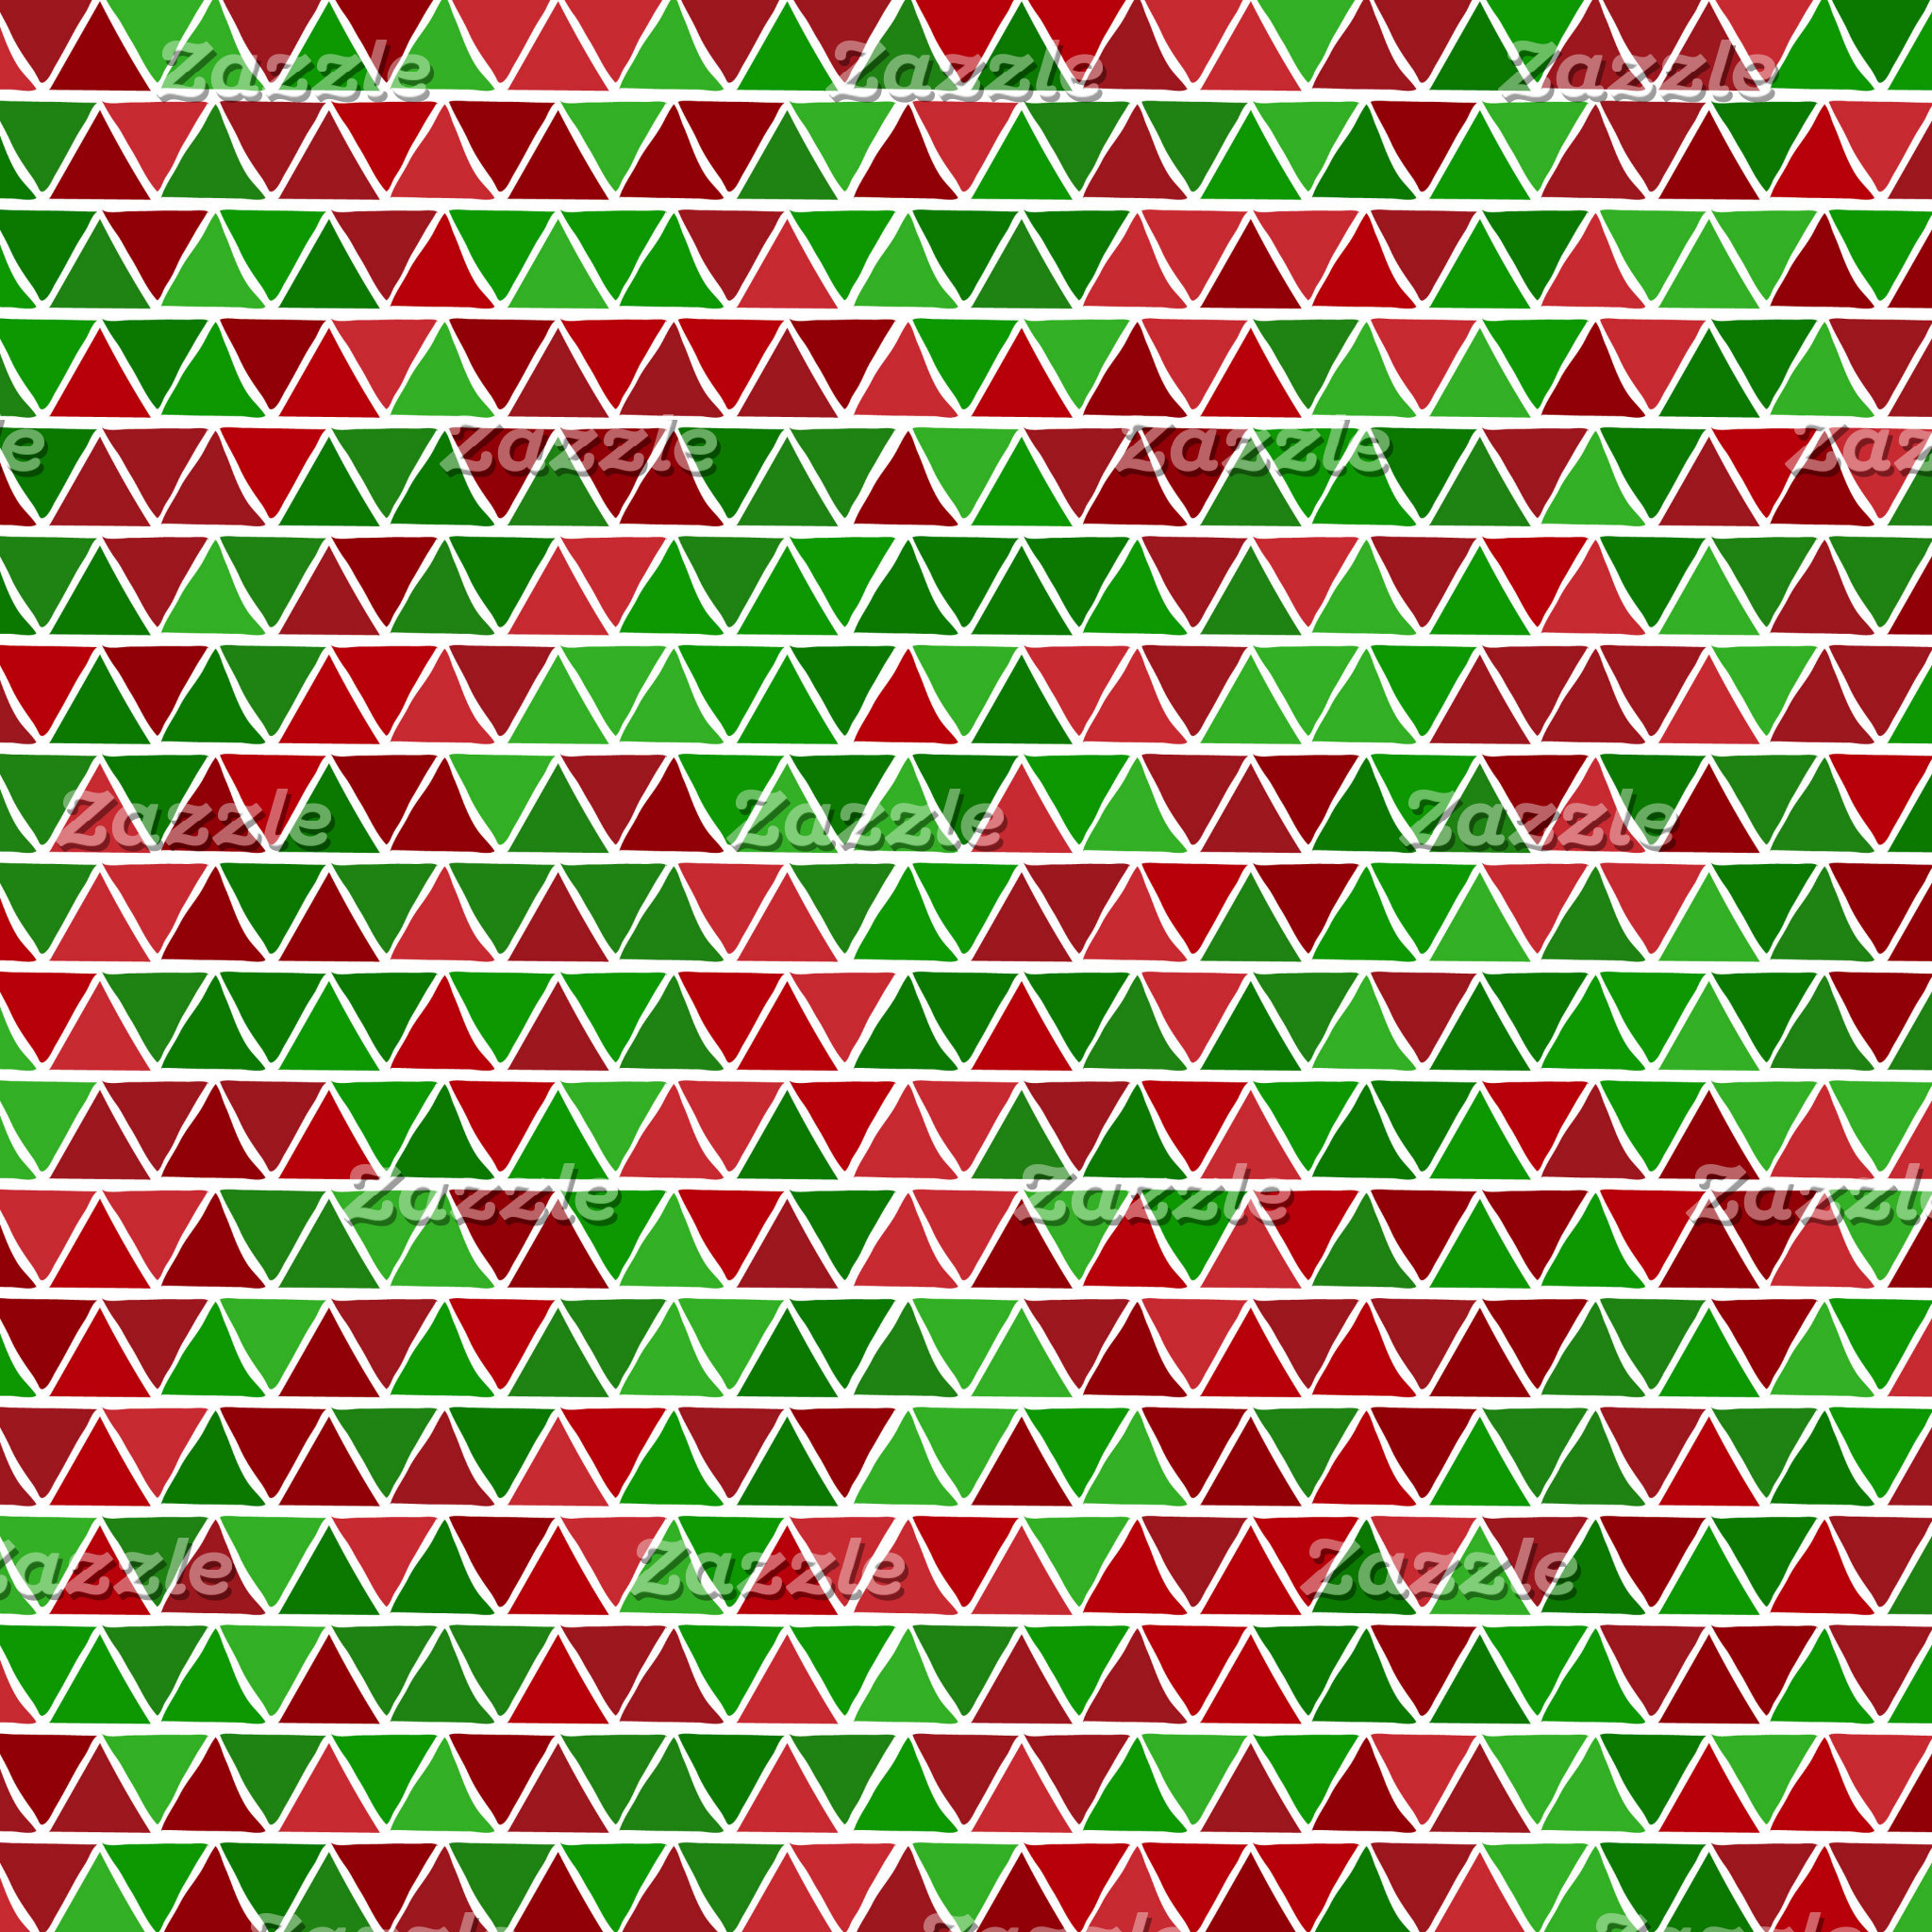 Green red triangle